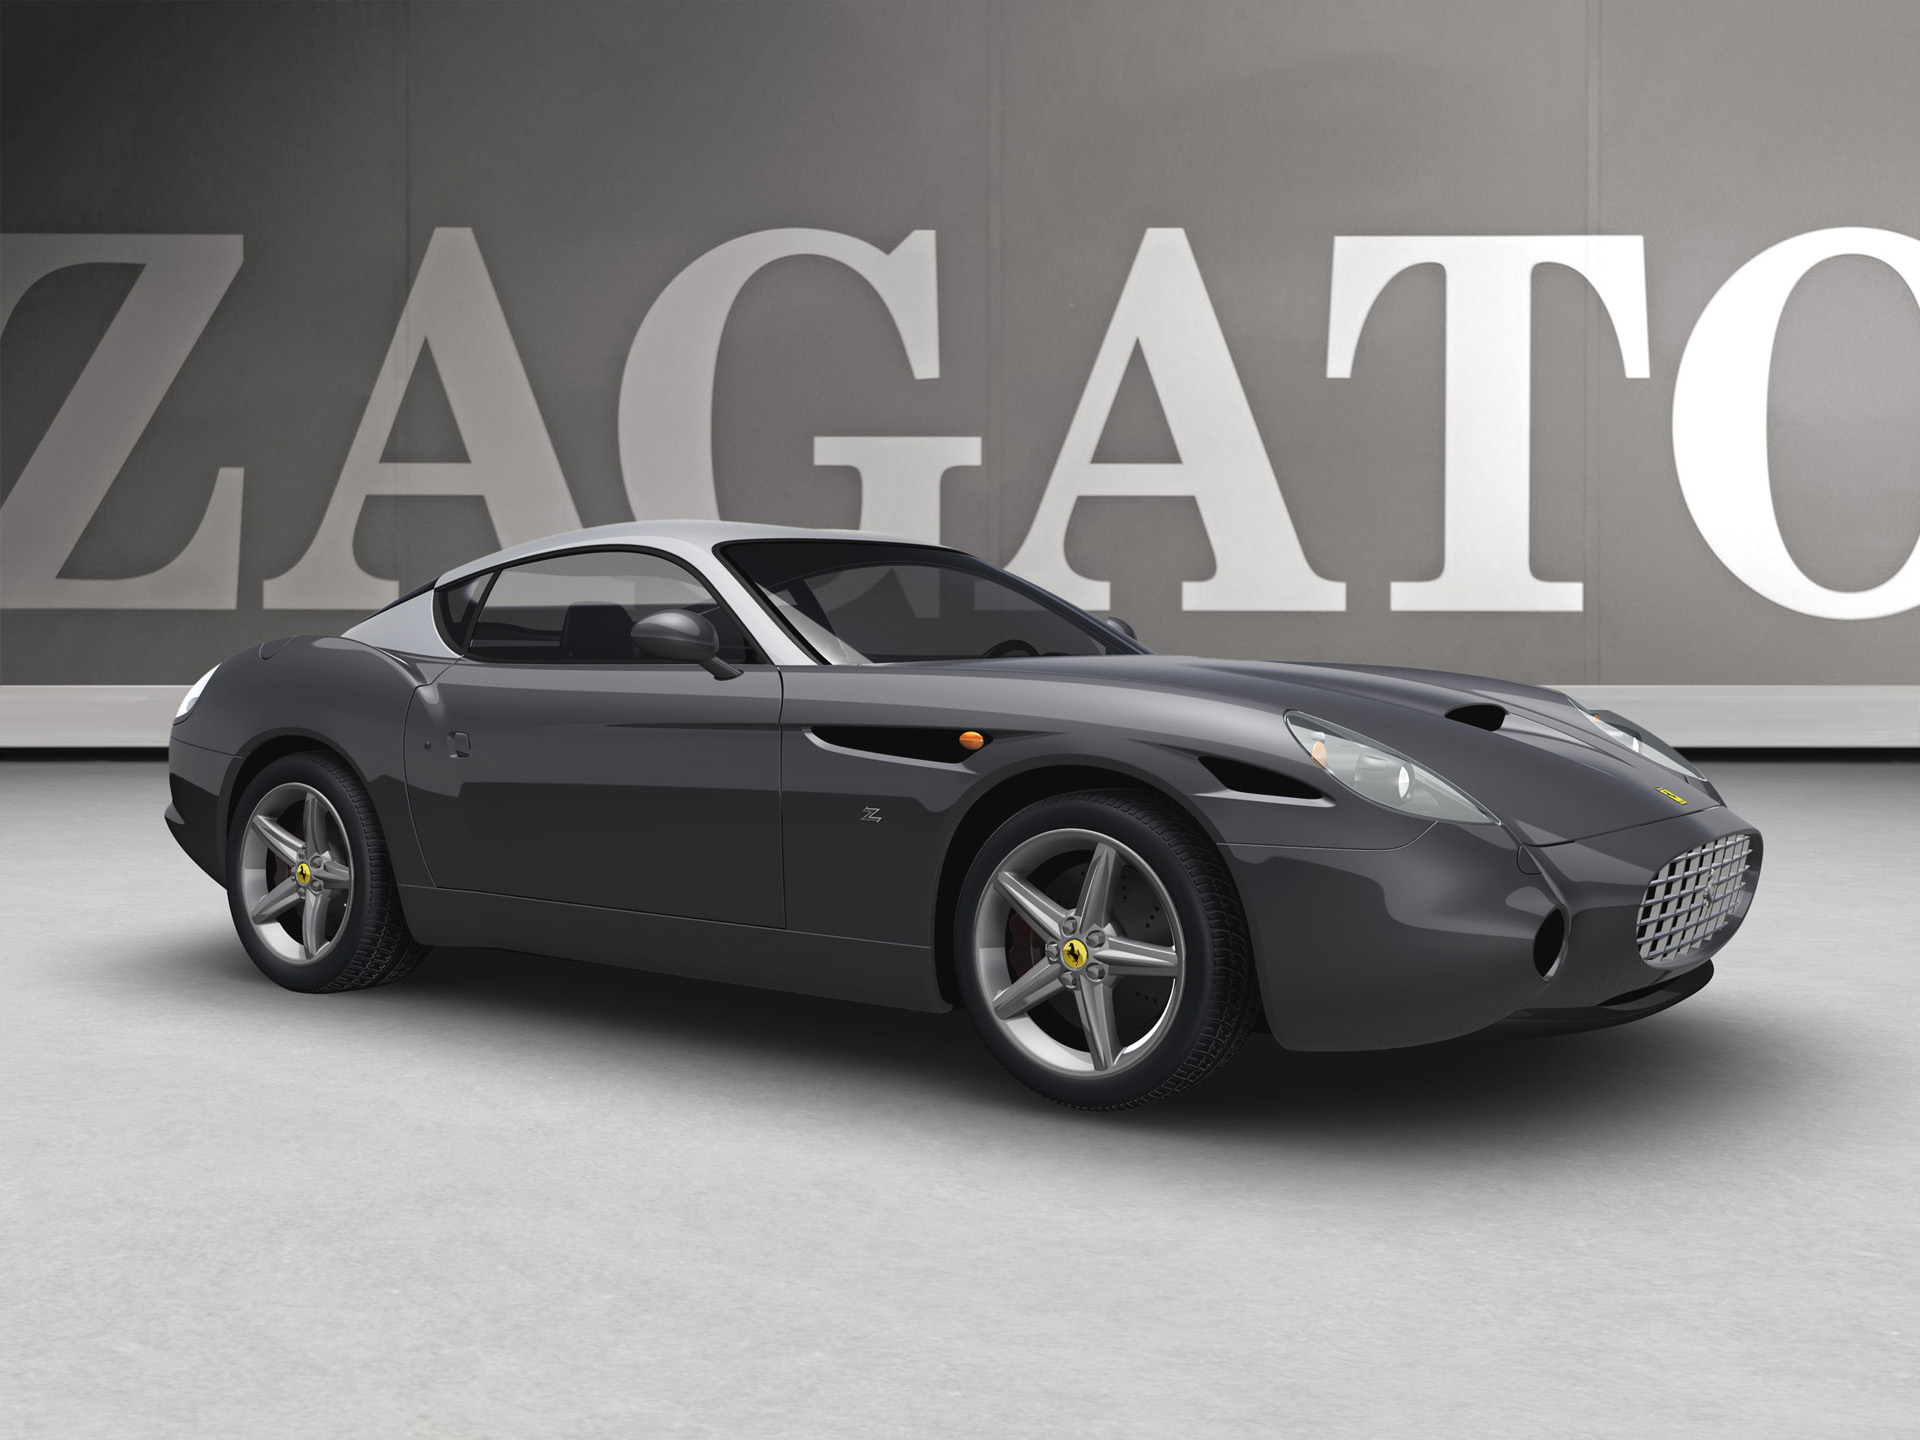 Zagato Ferrari 575 GTZ photo 34426